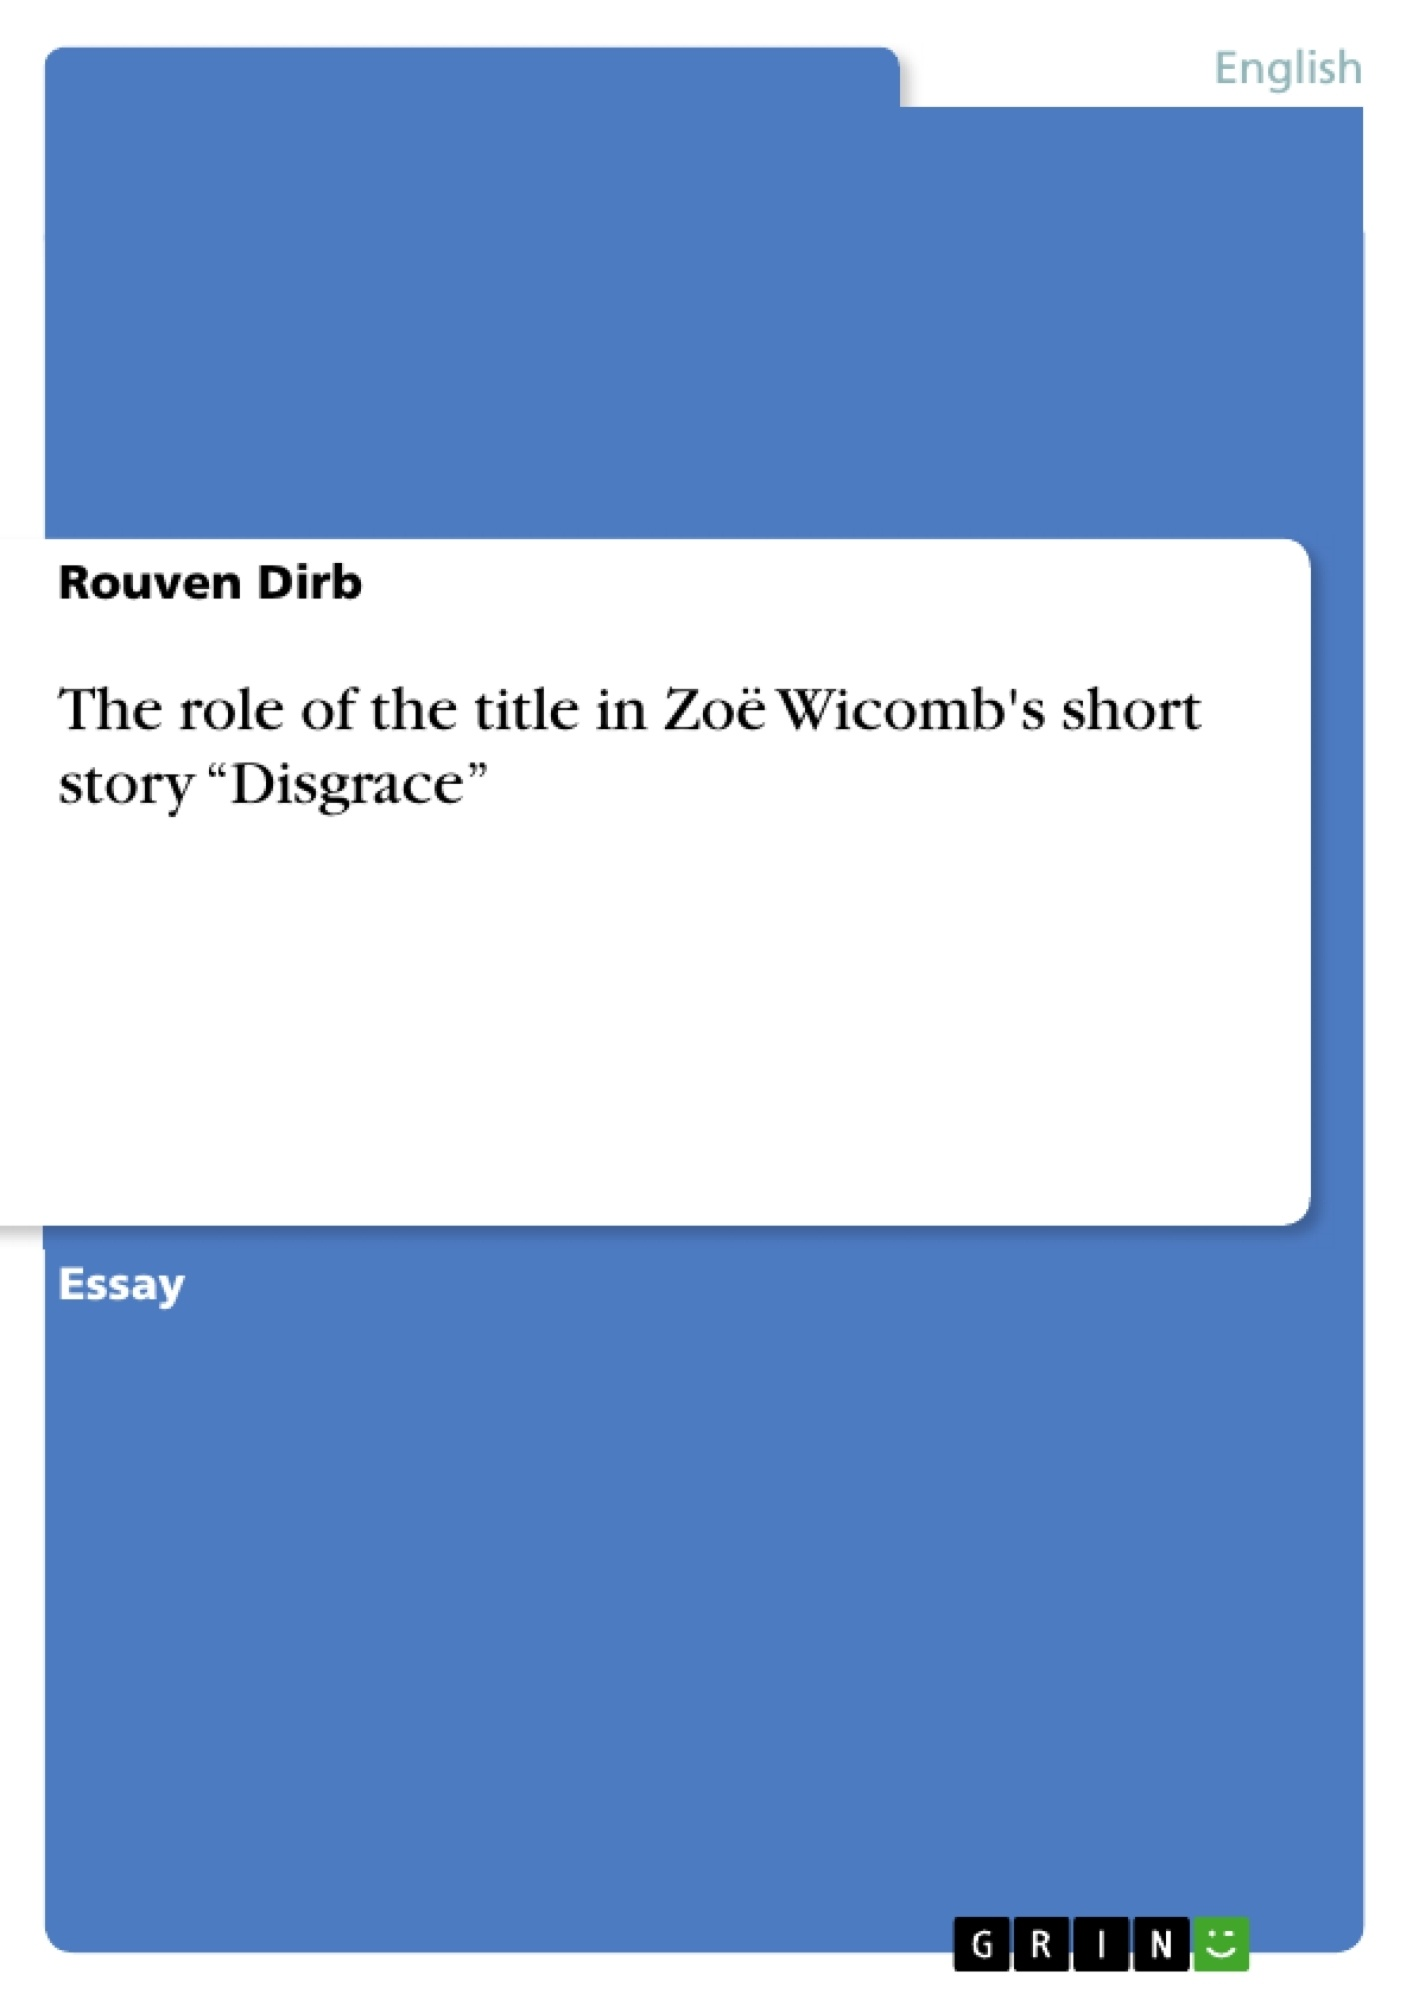 the role of the title in zo euml wicomb s short story disgrace upload your own papers earn money and win an iphone 7